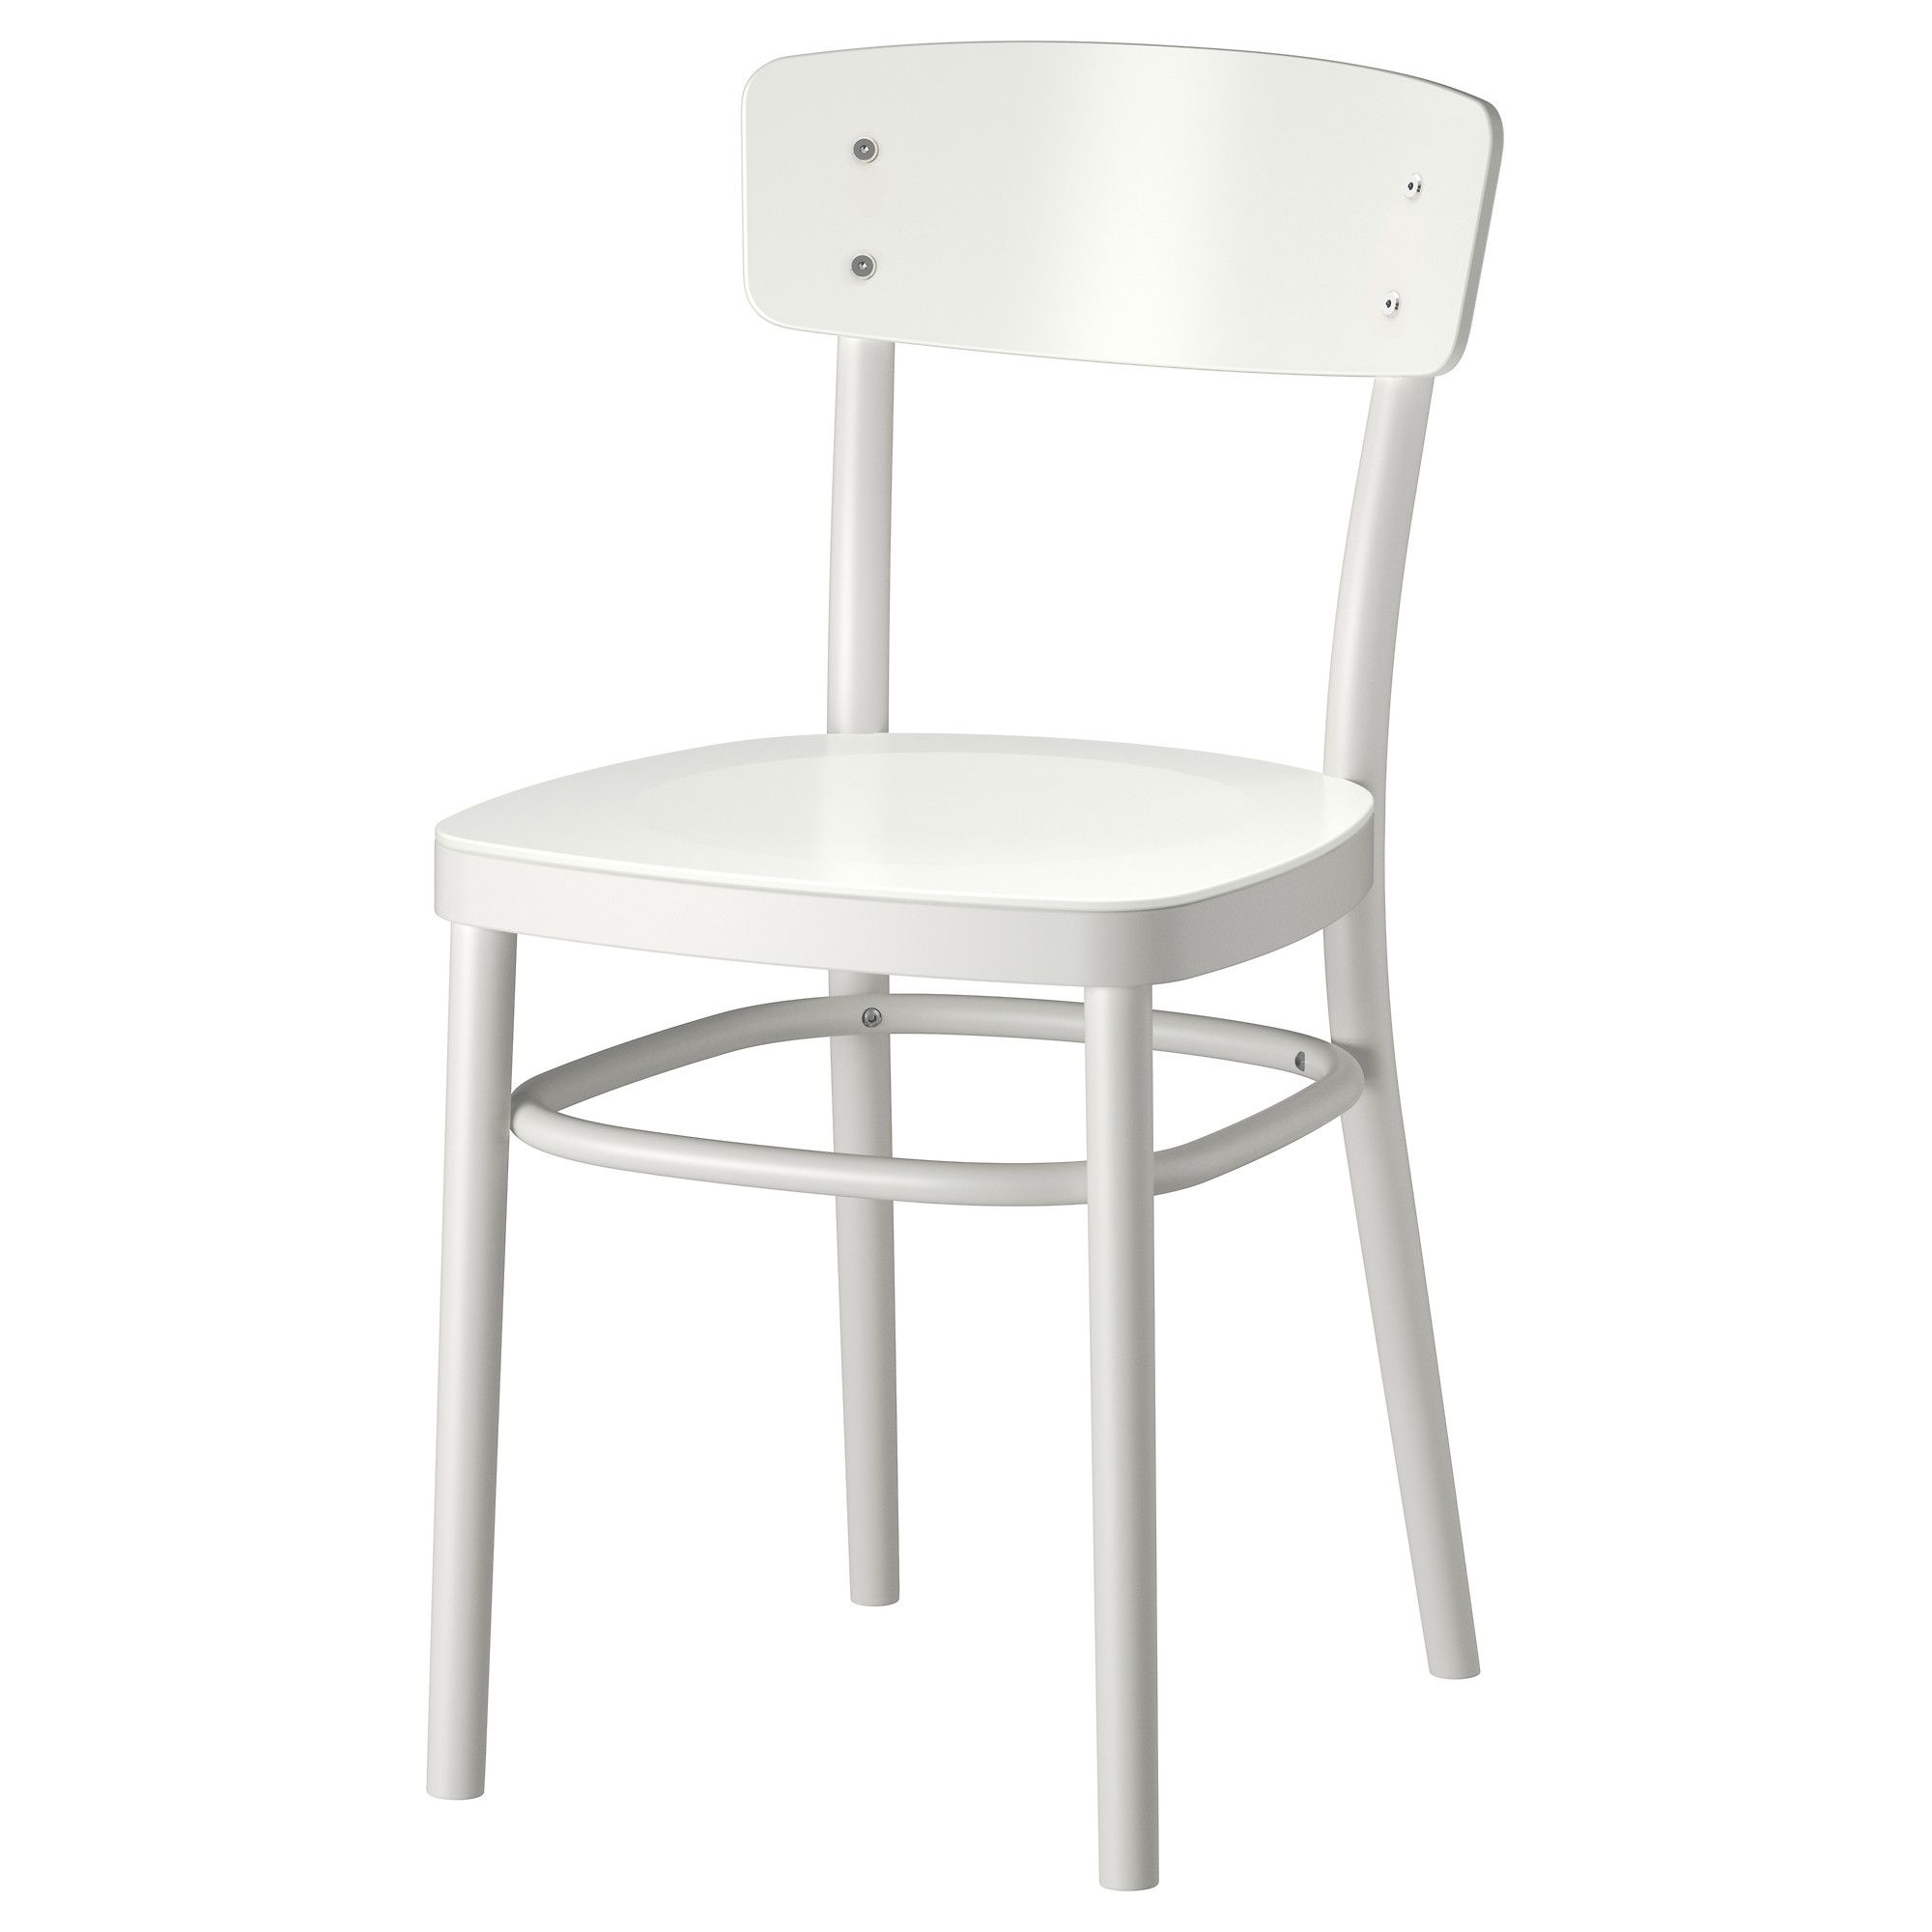 Acrylic chair ikea - Idolf Chair Ikea To Replace The 4 Black Ones Like The Curved Back Think